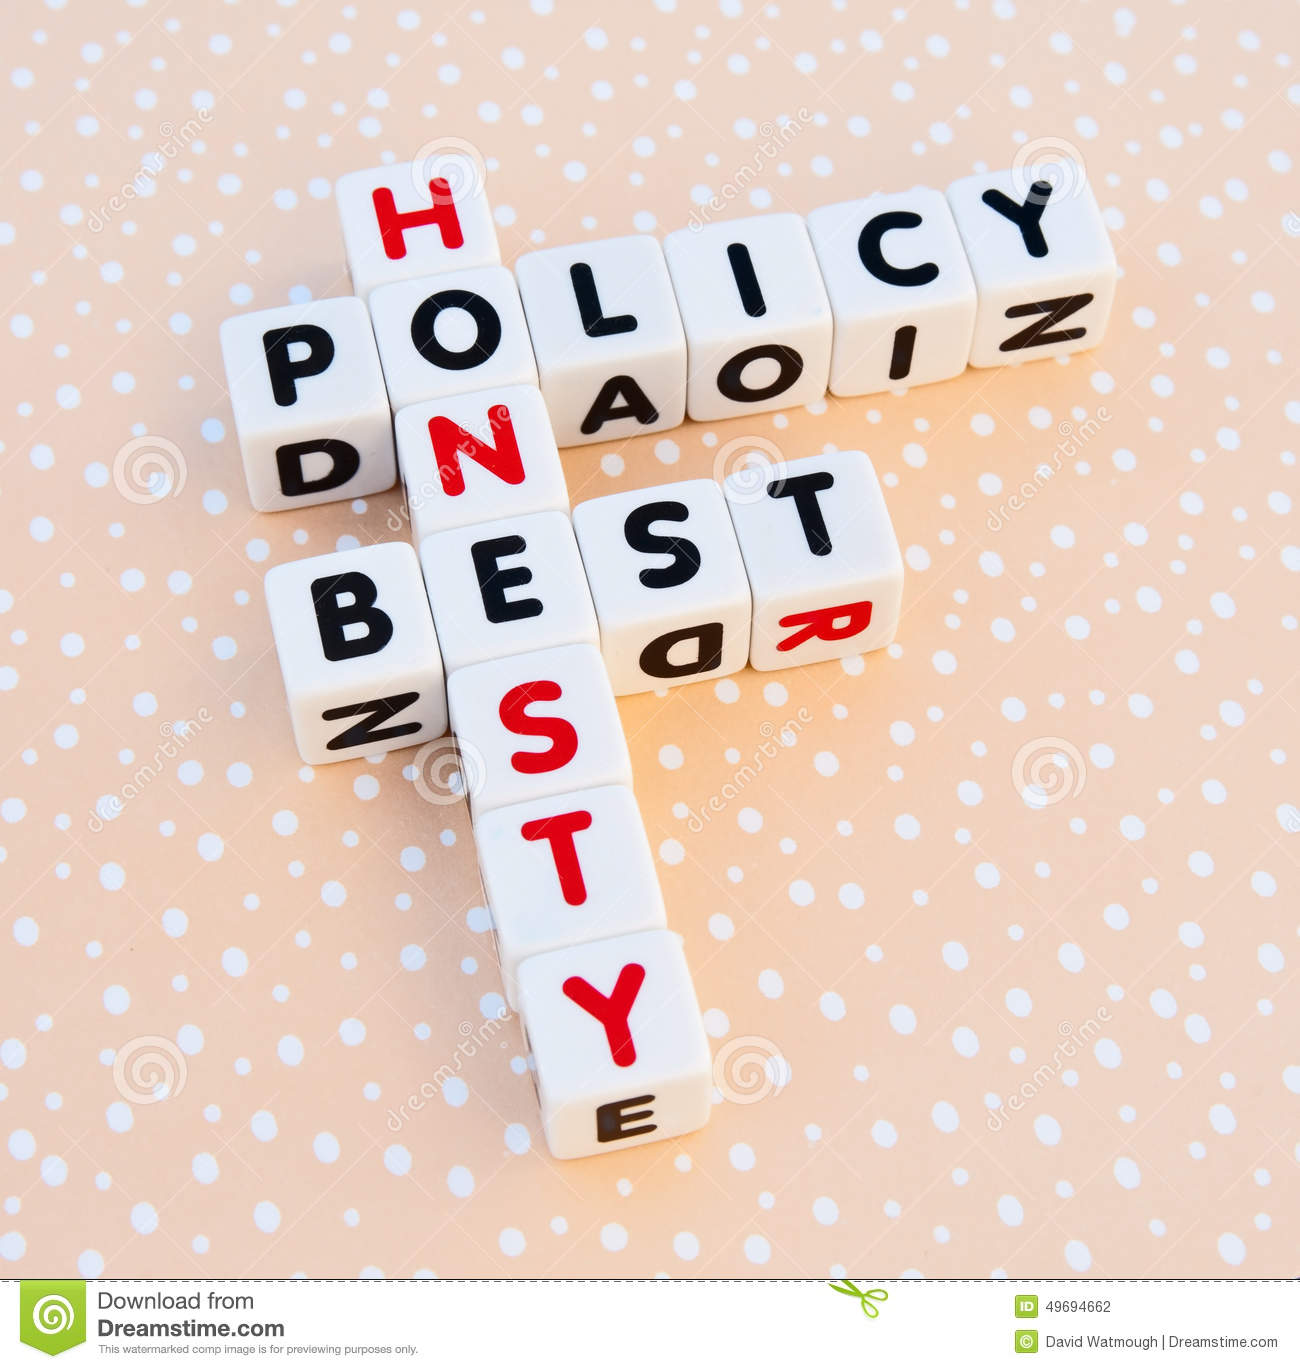 Honesty Best Policy Stock Photo - Image: 49694662